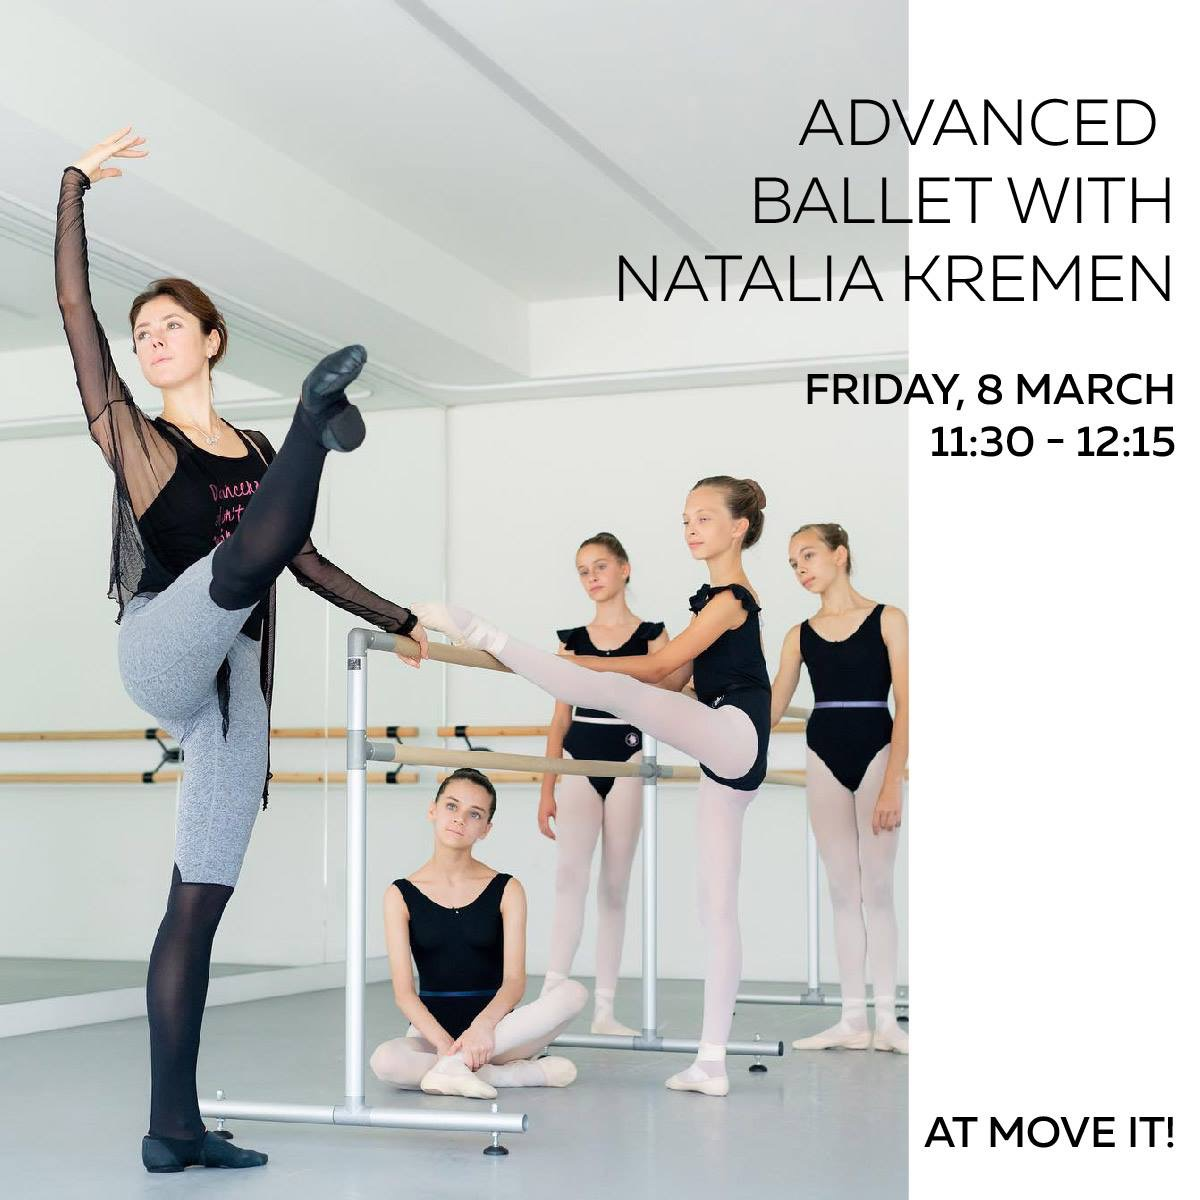 NK Ballet School – Move It Exhibition